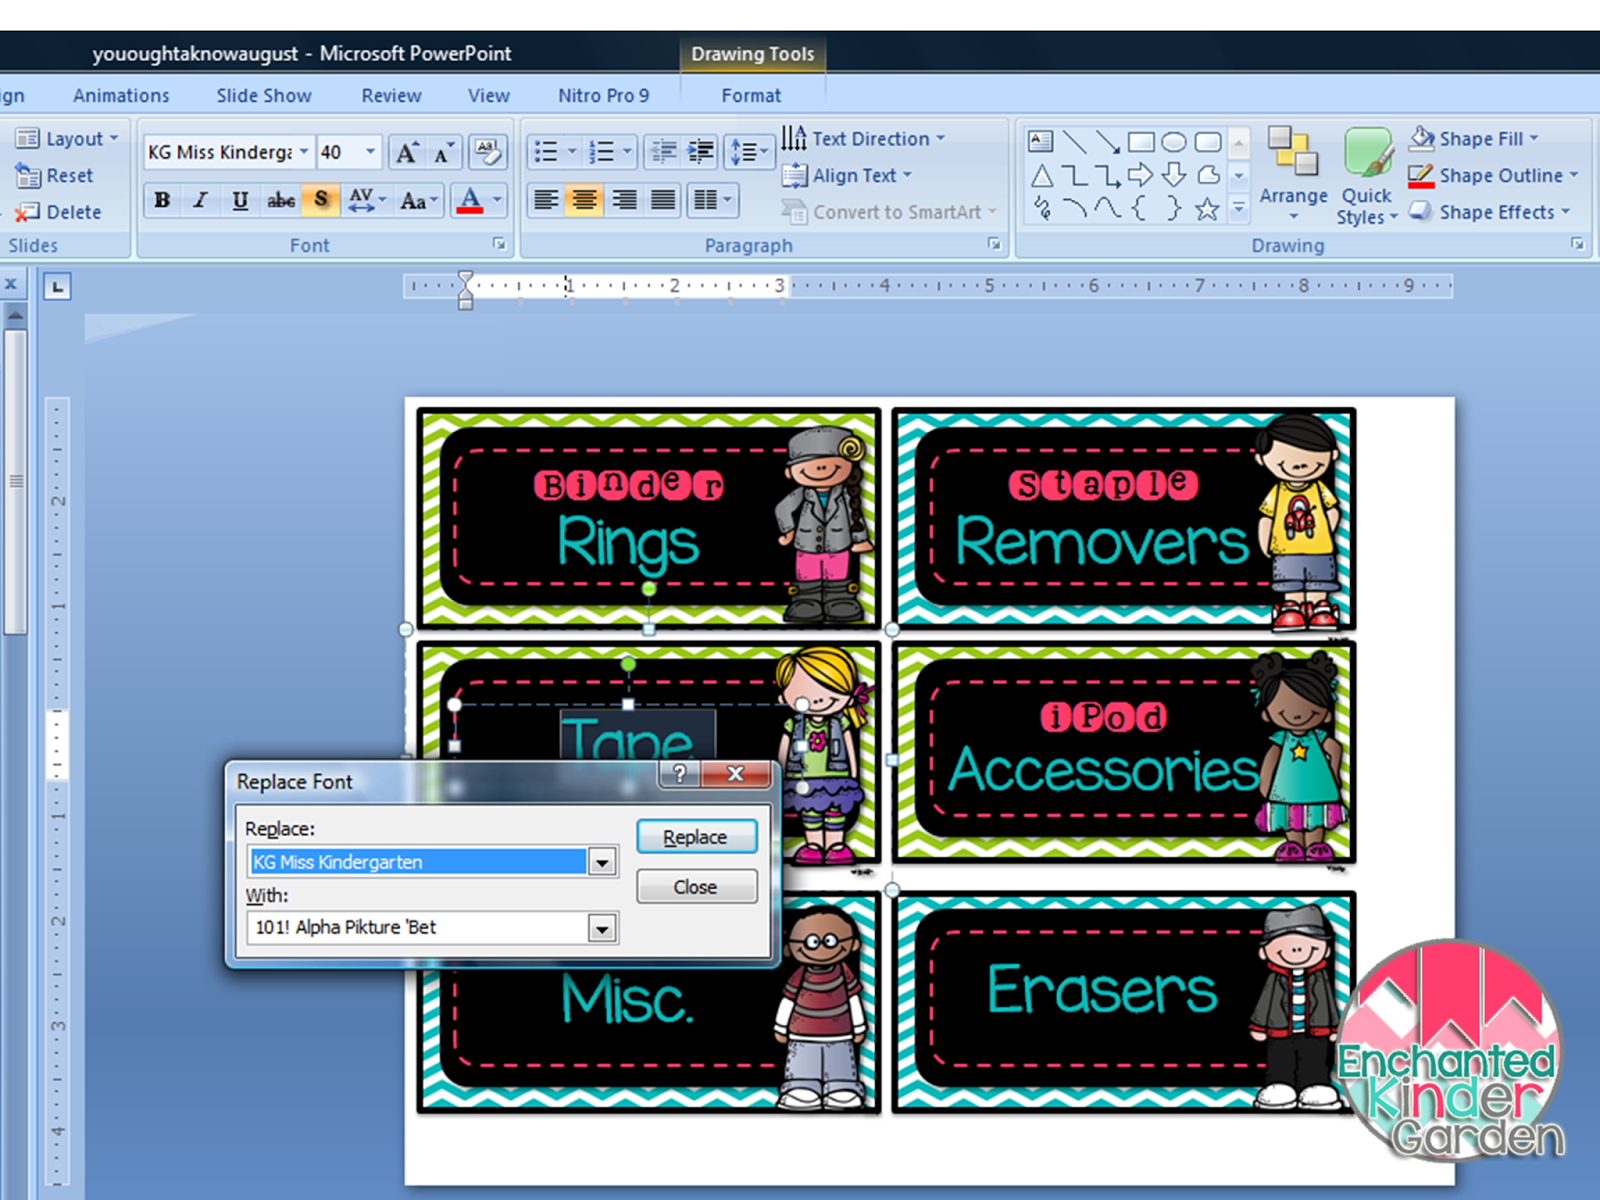 This is a screenshot of PowerPoint showing the Replace Font window.